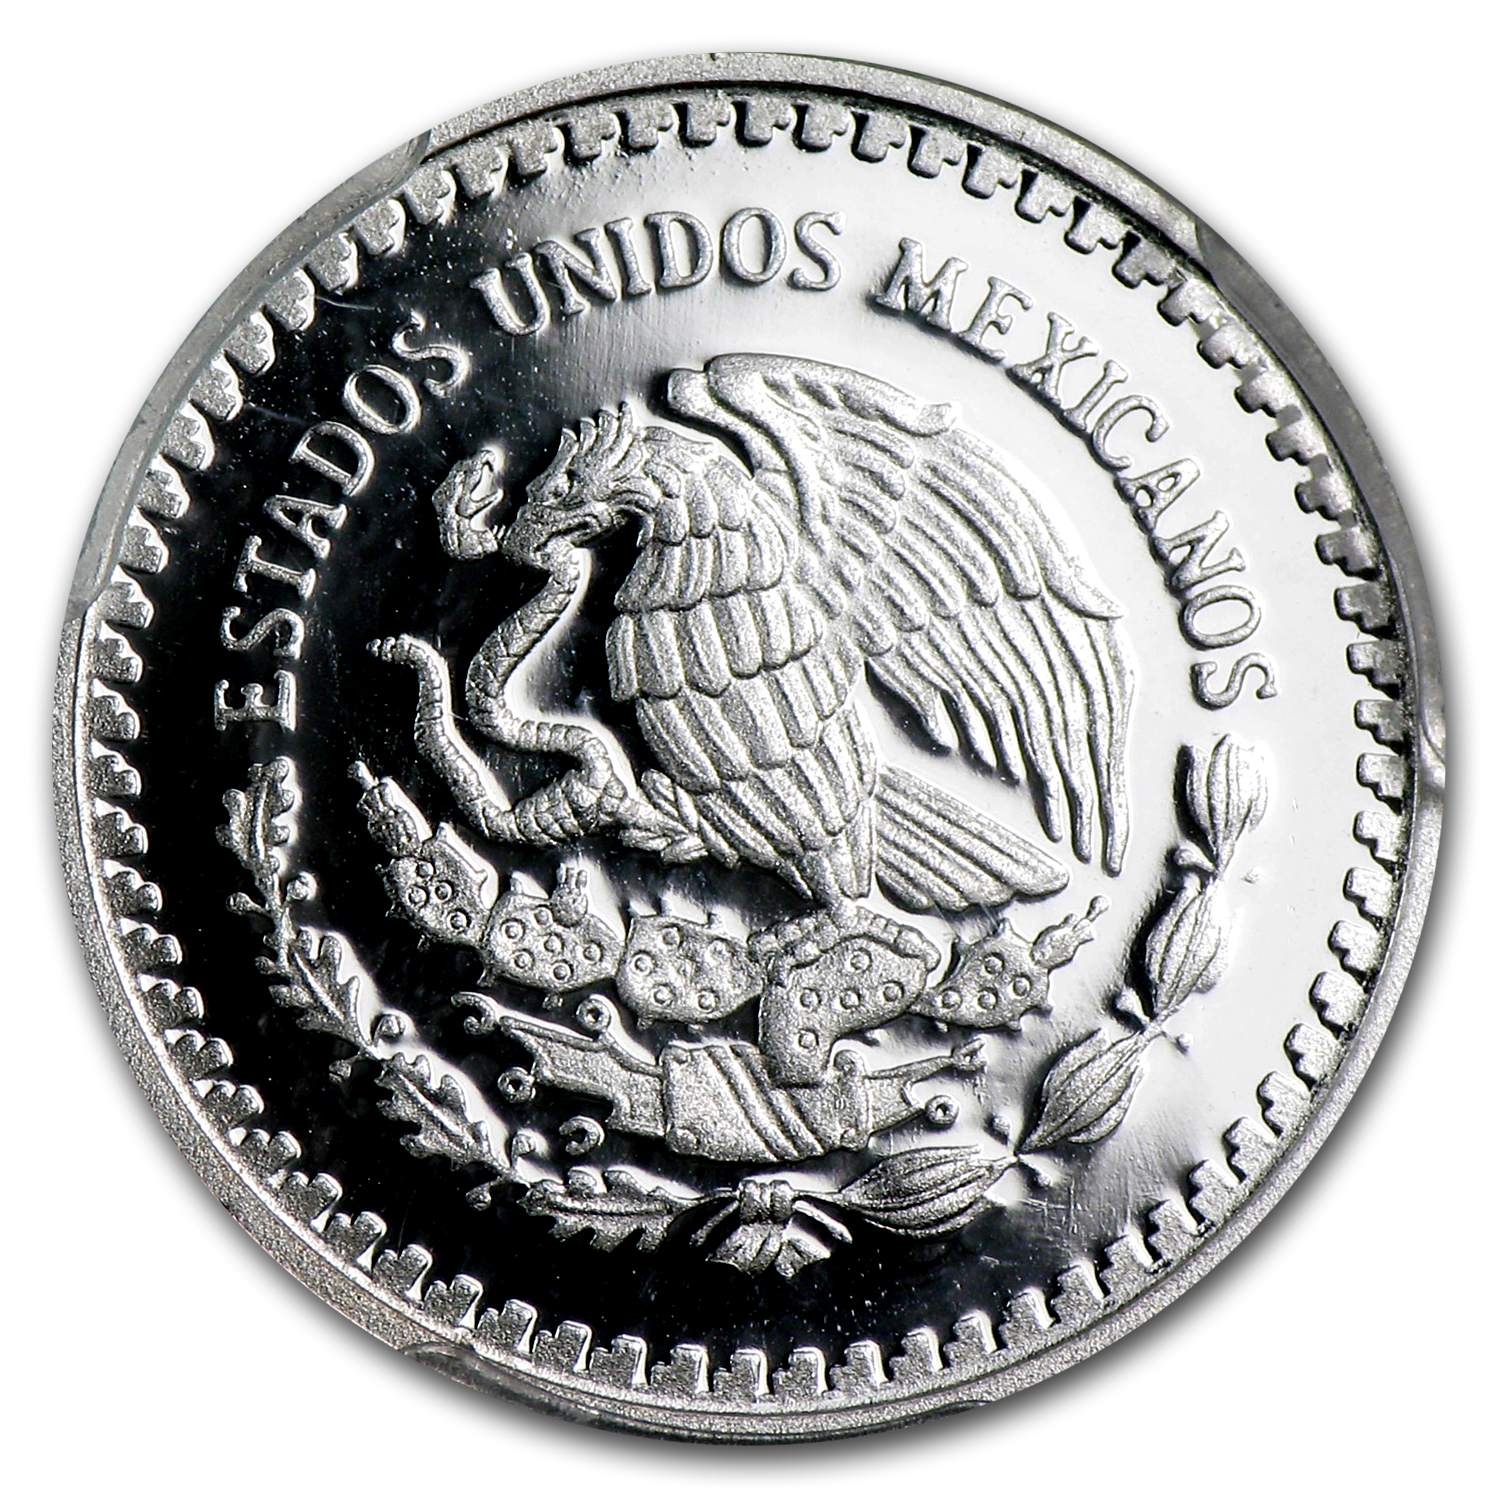 2010 Mexico 1/10 oz Proof Silver Libertad PR-70 PCGS